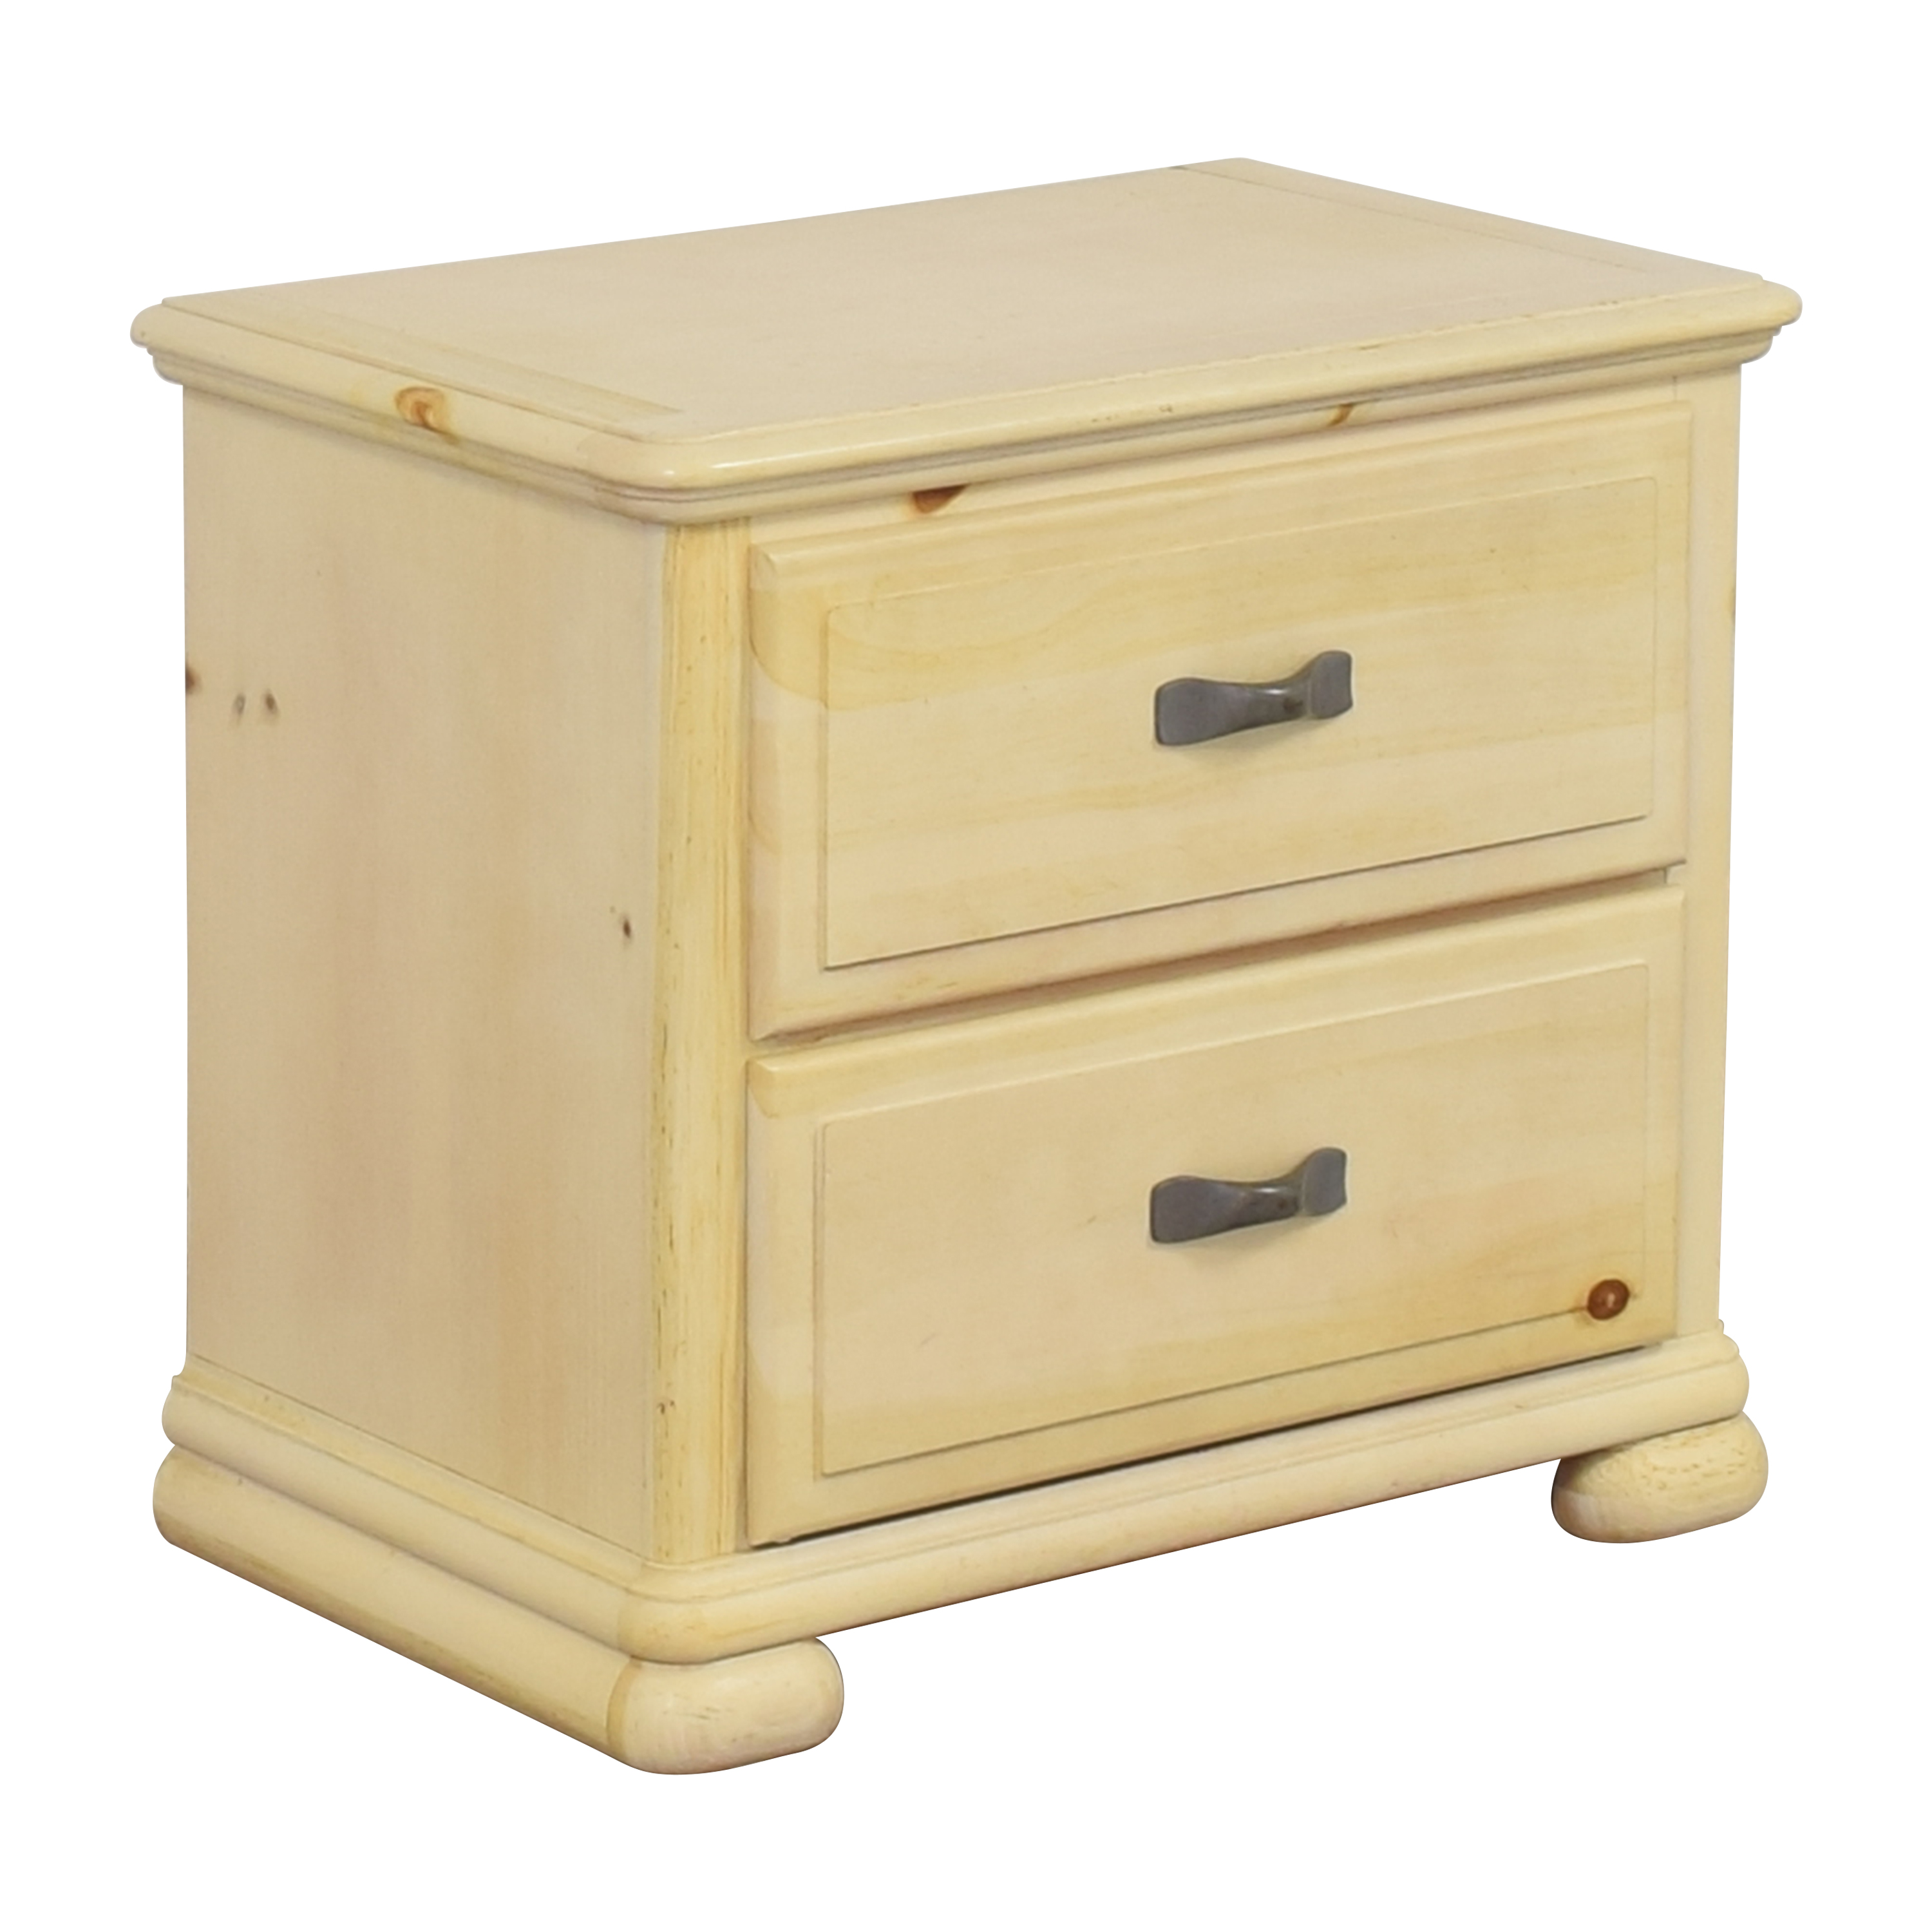 Stanley Furniture Stanley Furniture Two Drawer Nightstand on sale